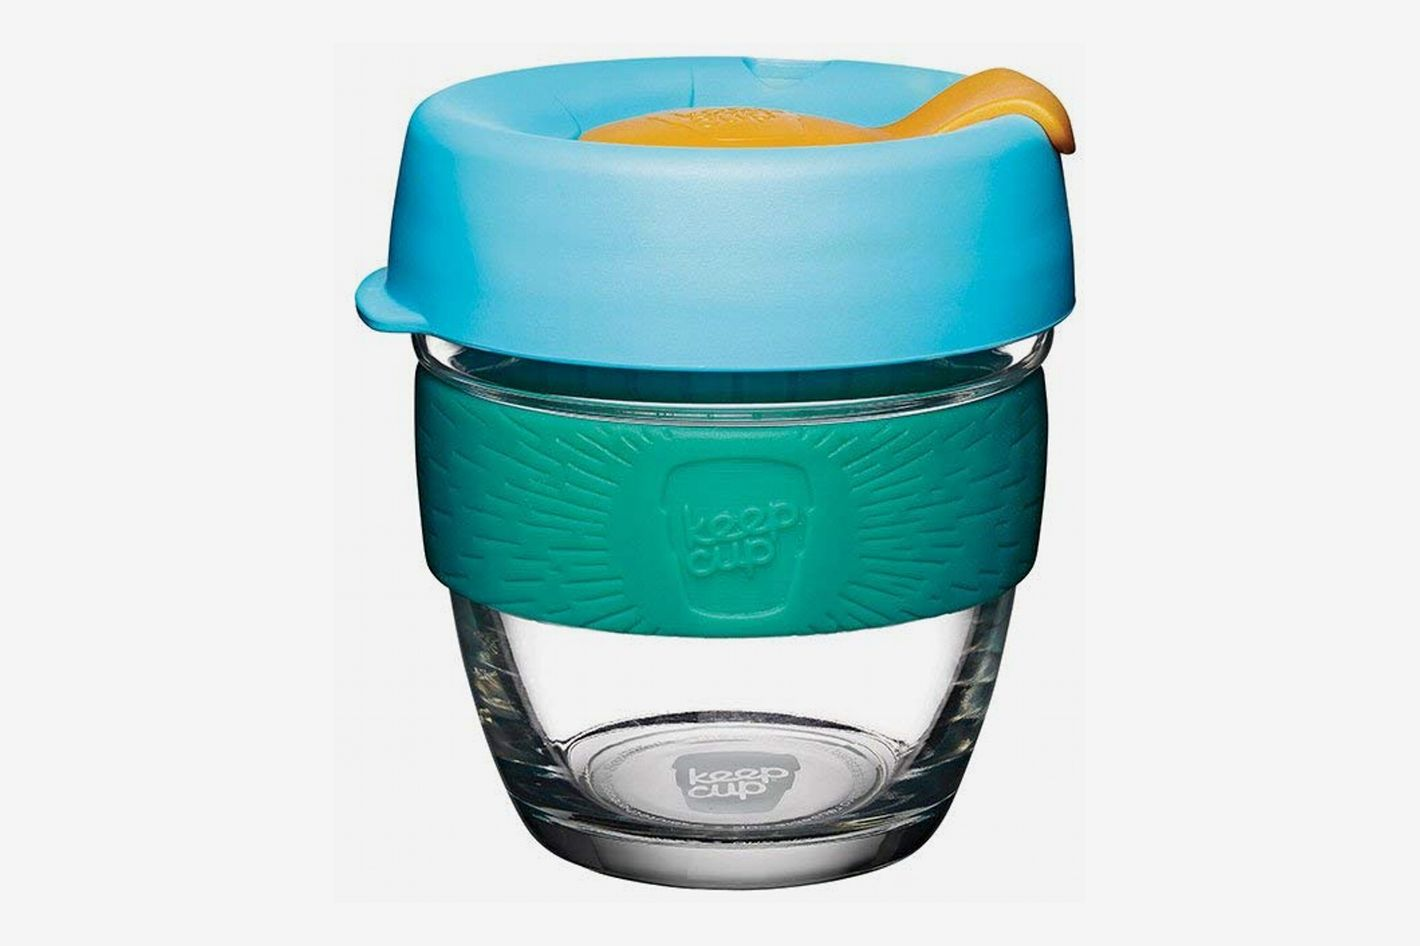 KeepCup Brew Glass Reusable Coffee Cup, Small